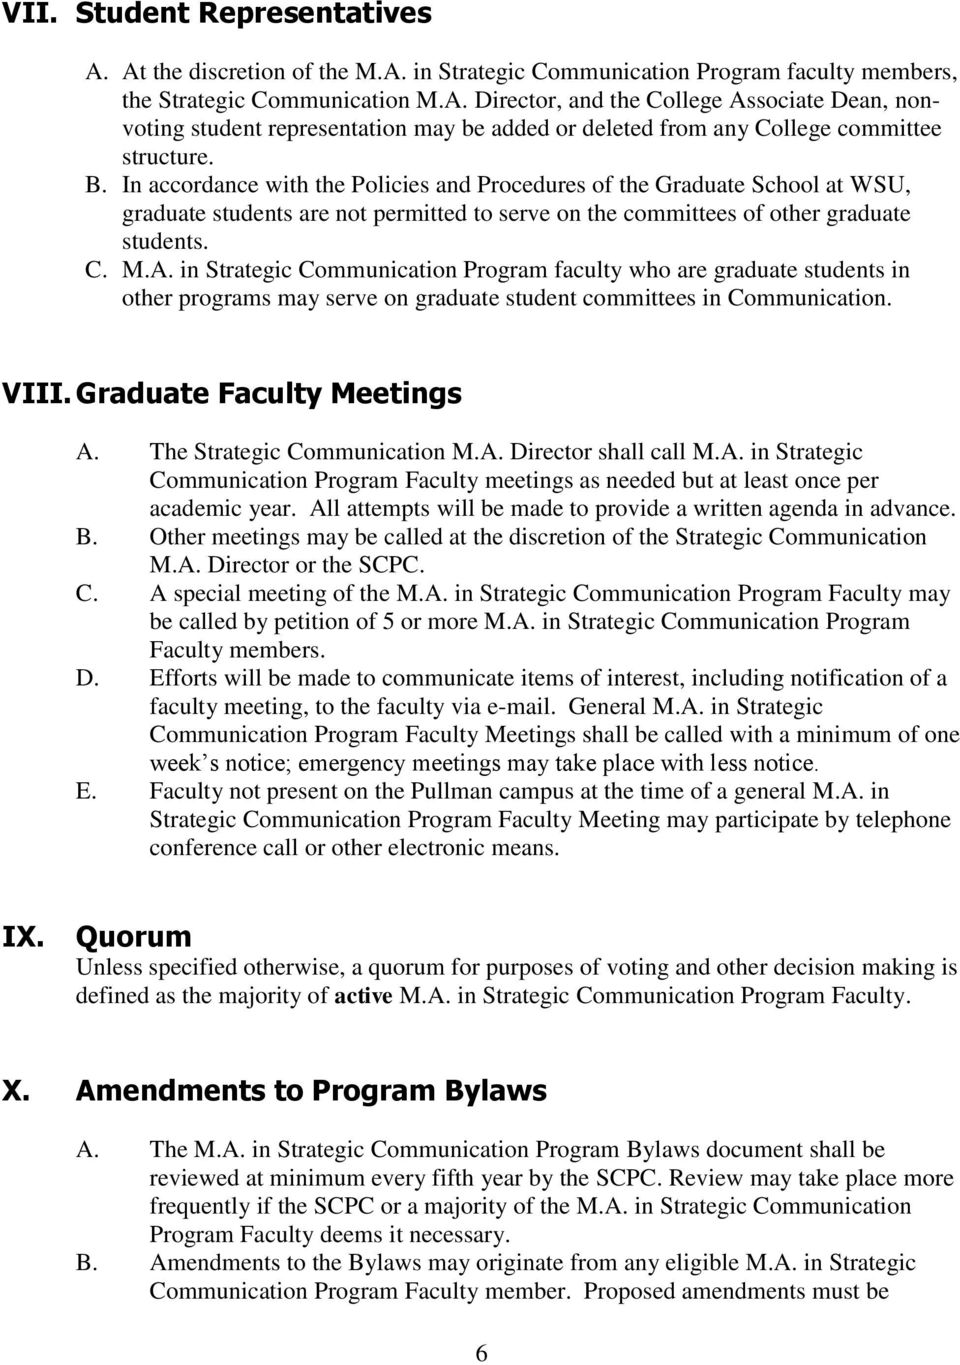 in Strategic Communication Program faculty who are graduate students in other programs may serve on graduate student committees in Communication. VIII. Graduate Faculty Meetings A.